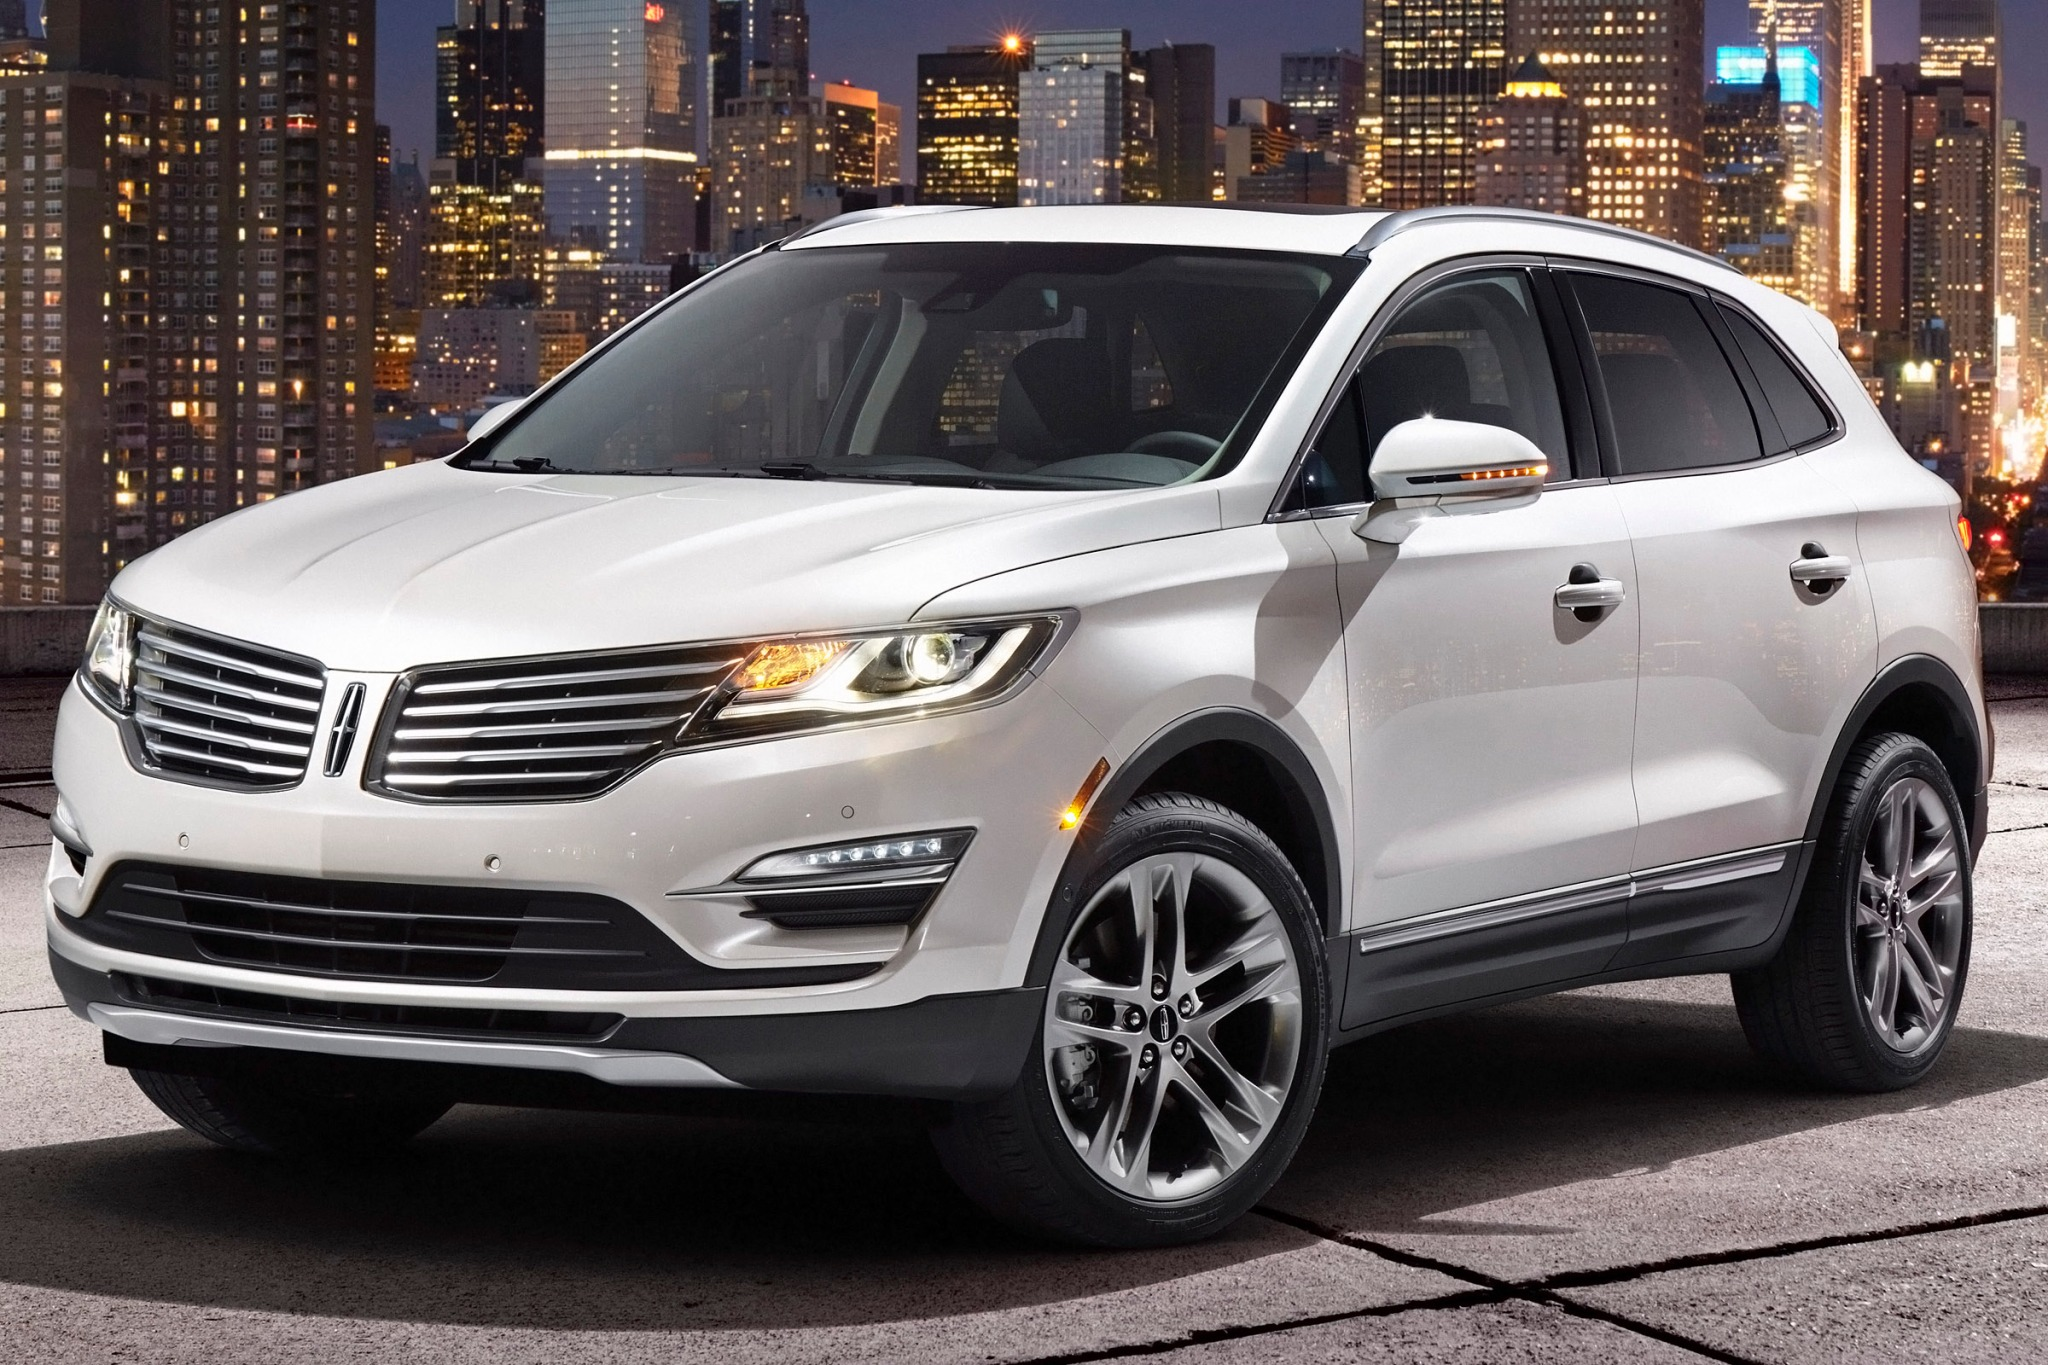 2015 Lincoln MKC 4dr SUV  exterior #1